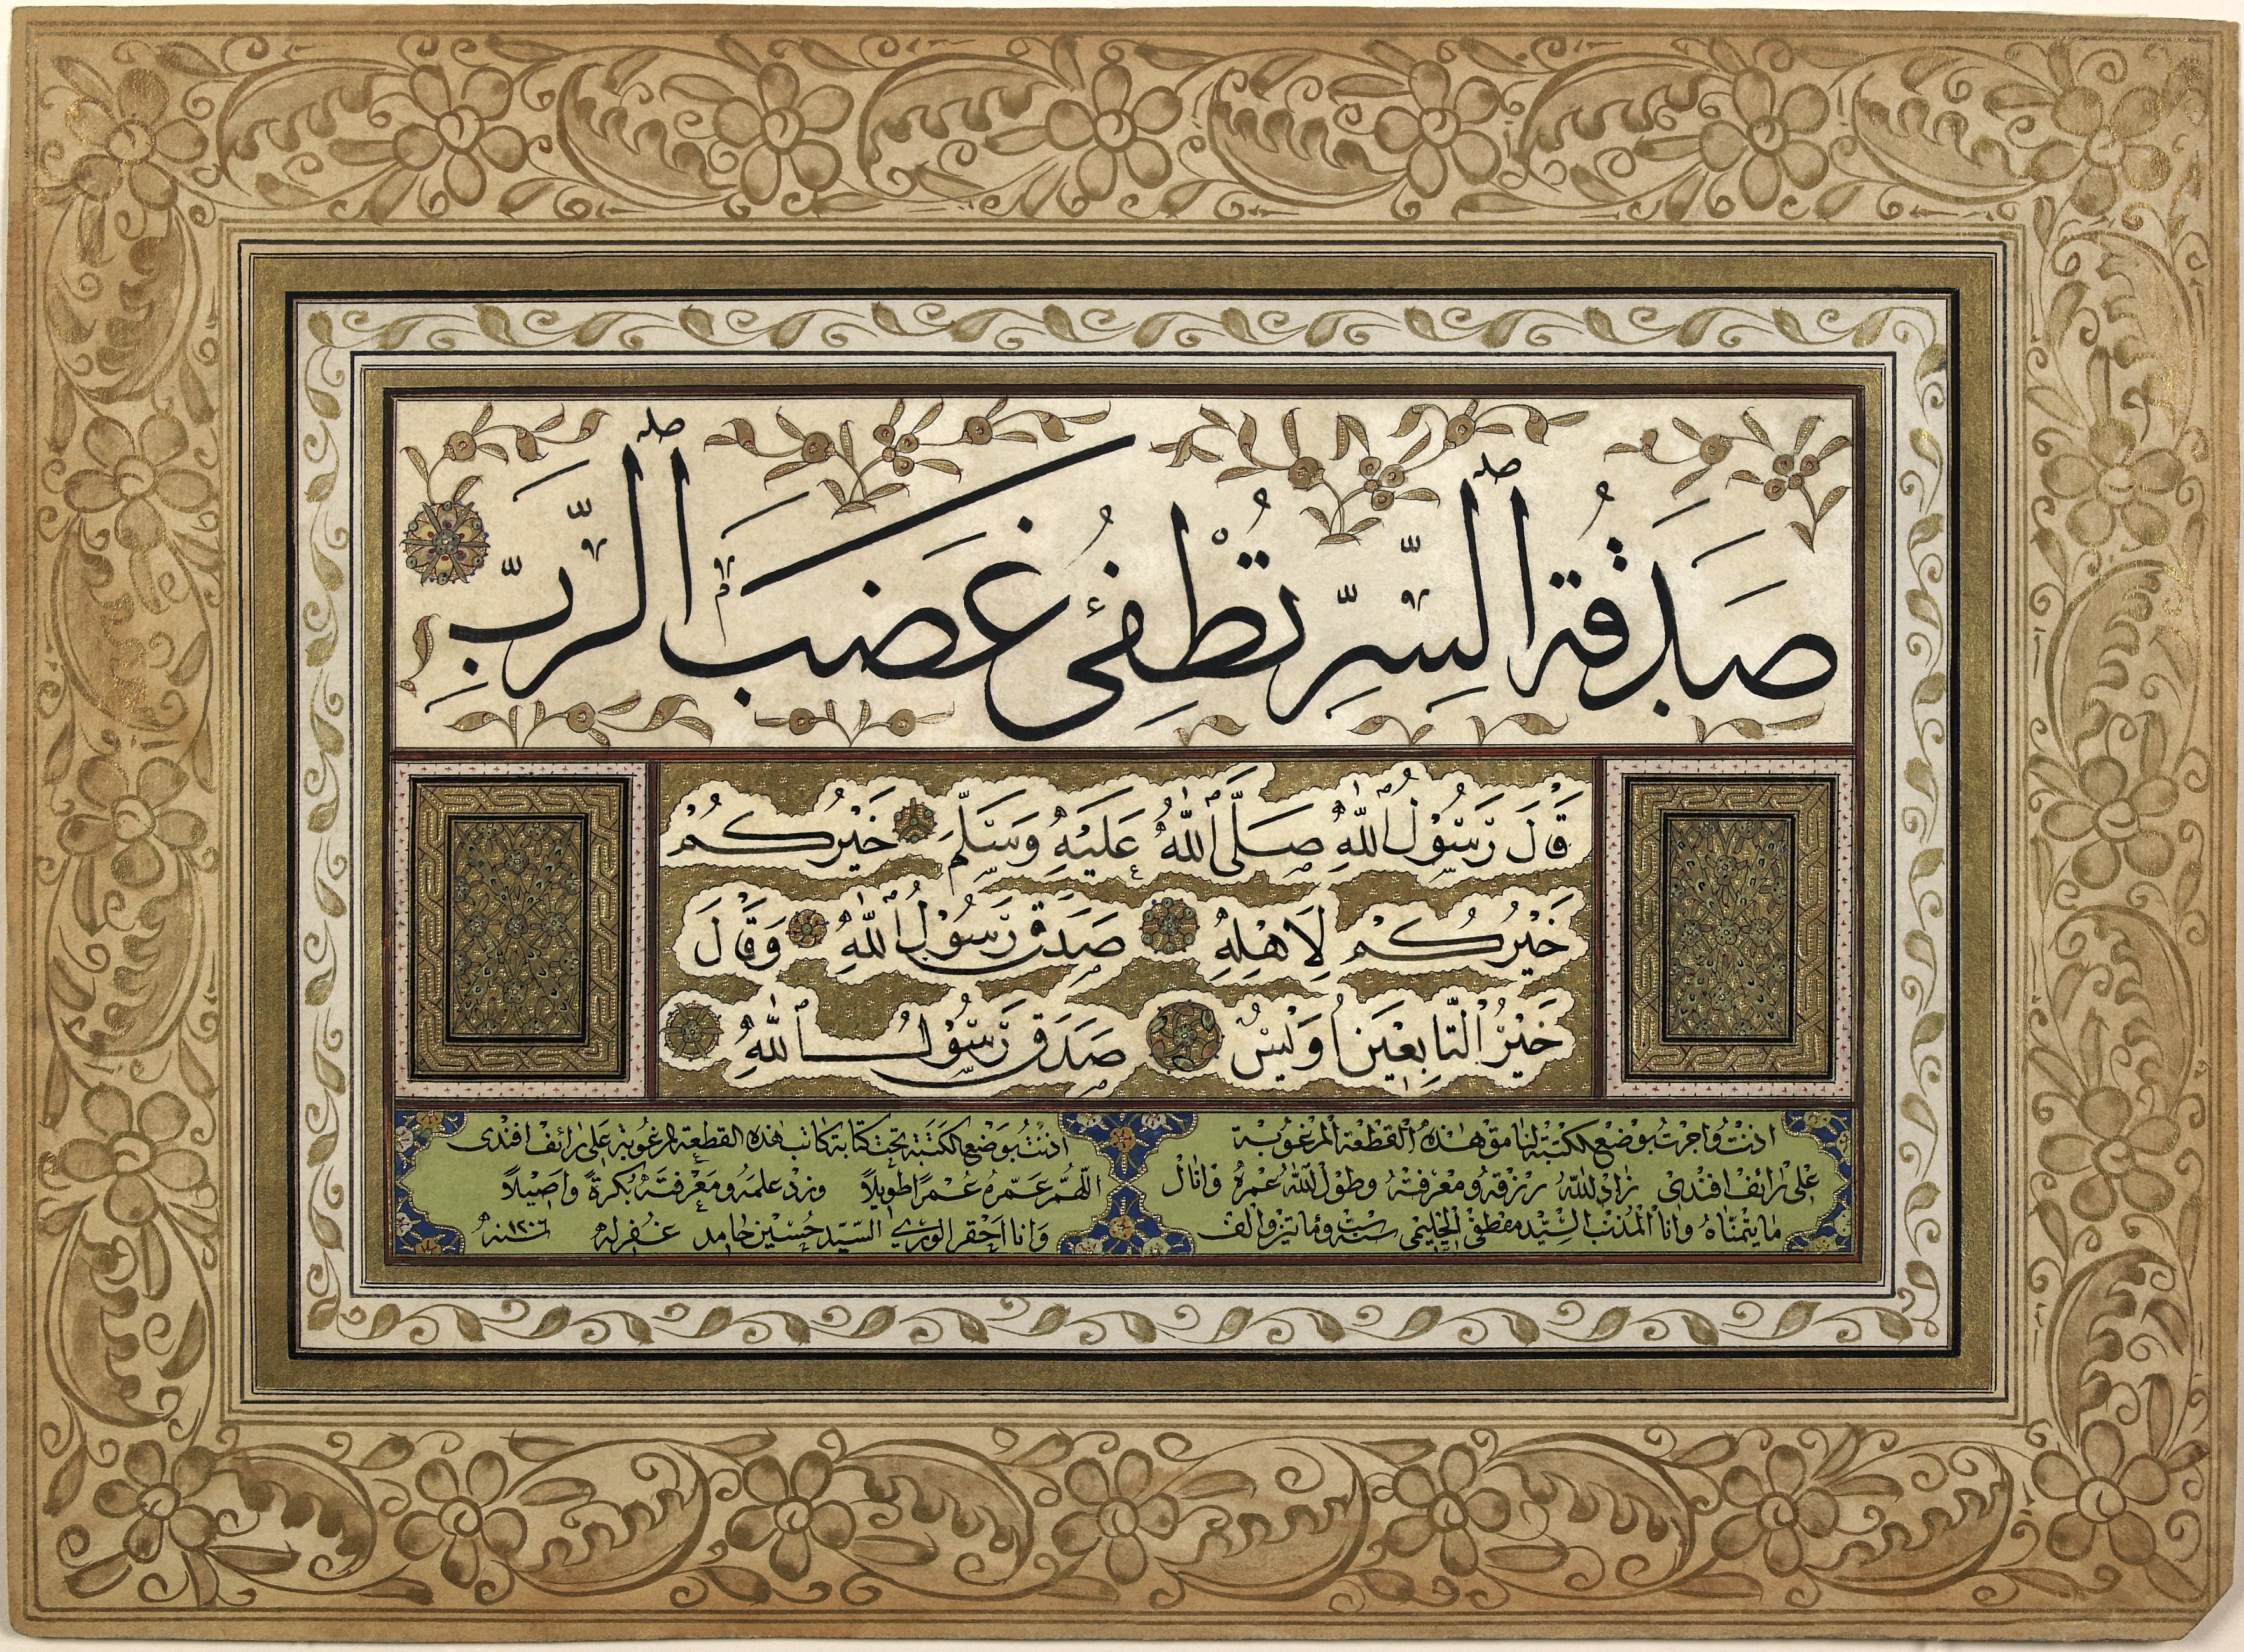 An Ottoman ijazah written in Arabic certifying competence in calligraphy, 1206 AH/1791 AD